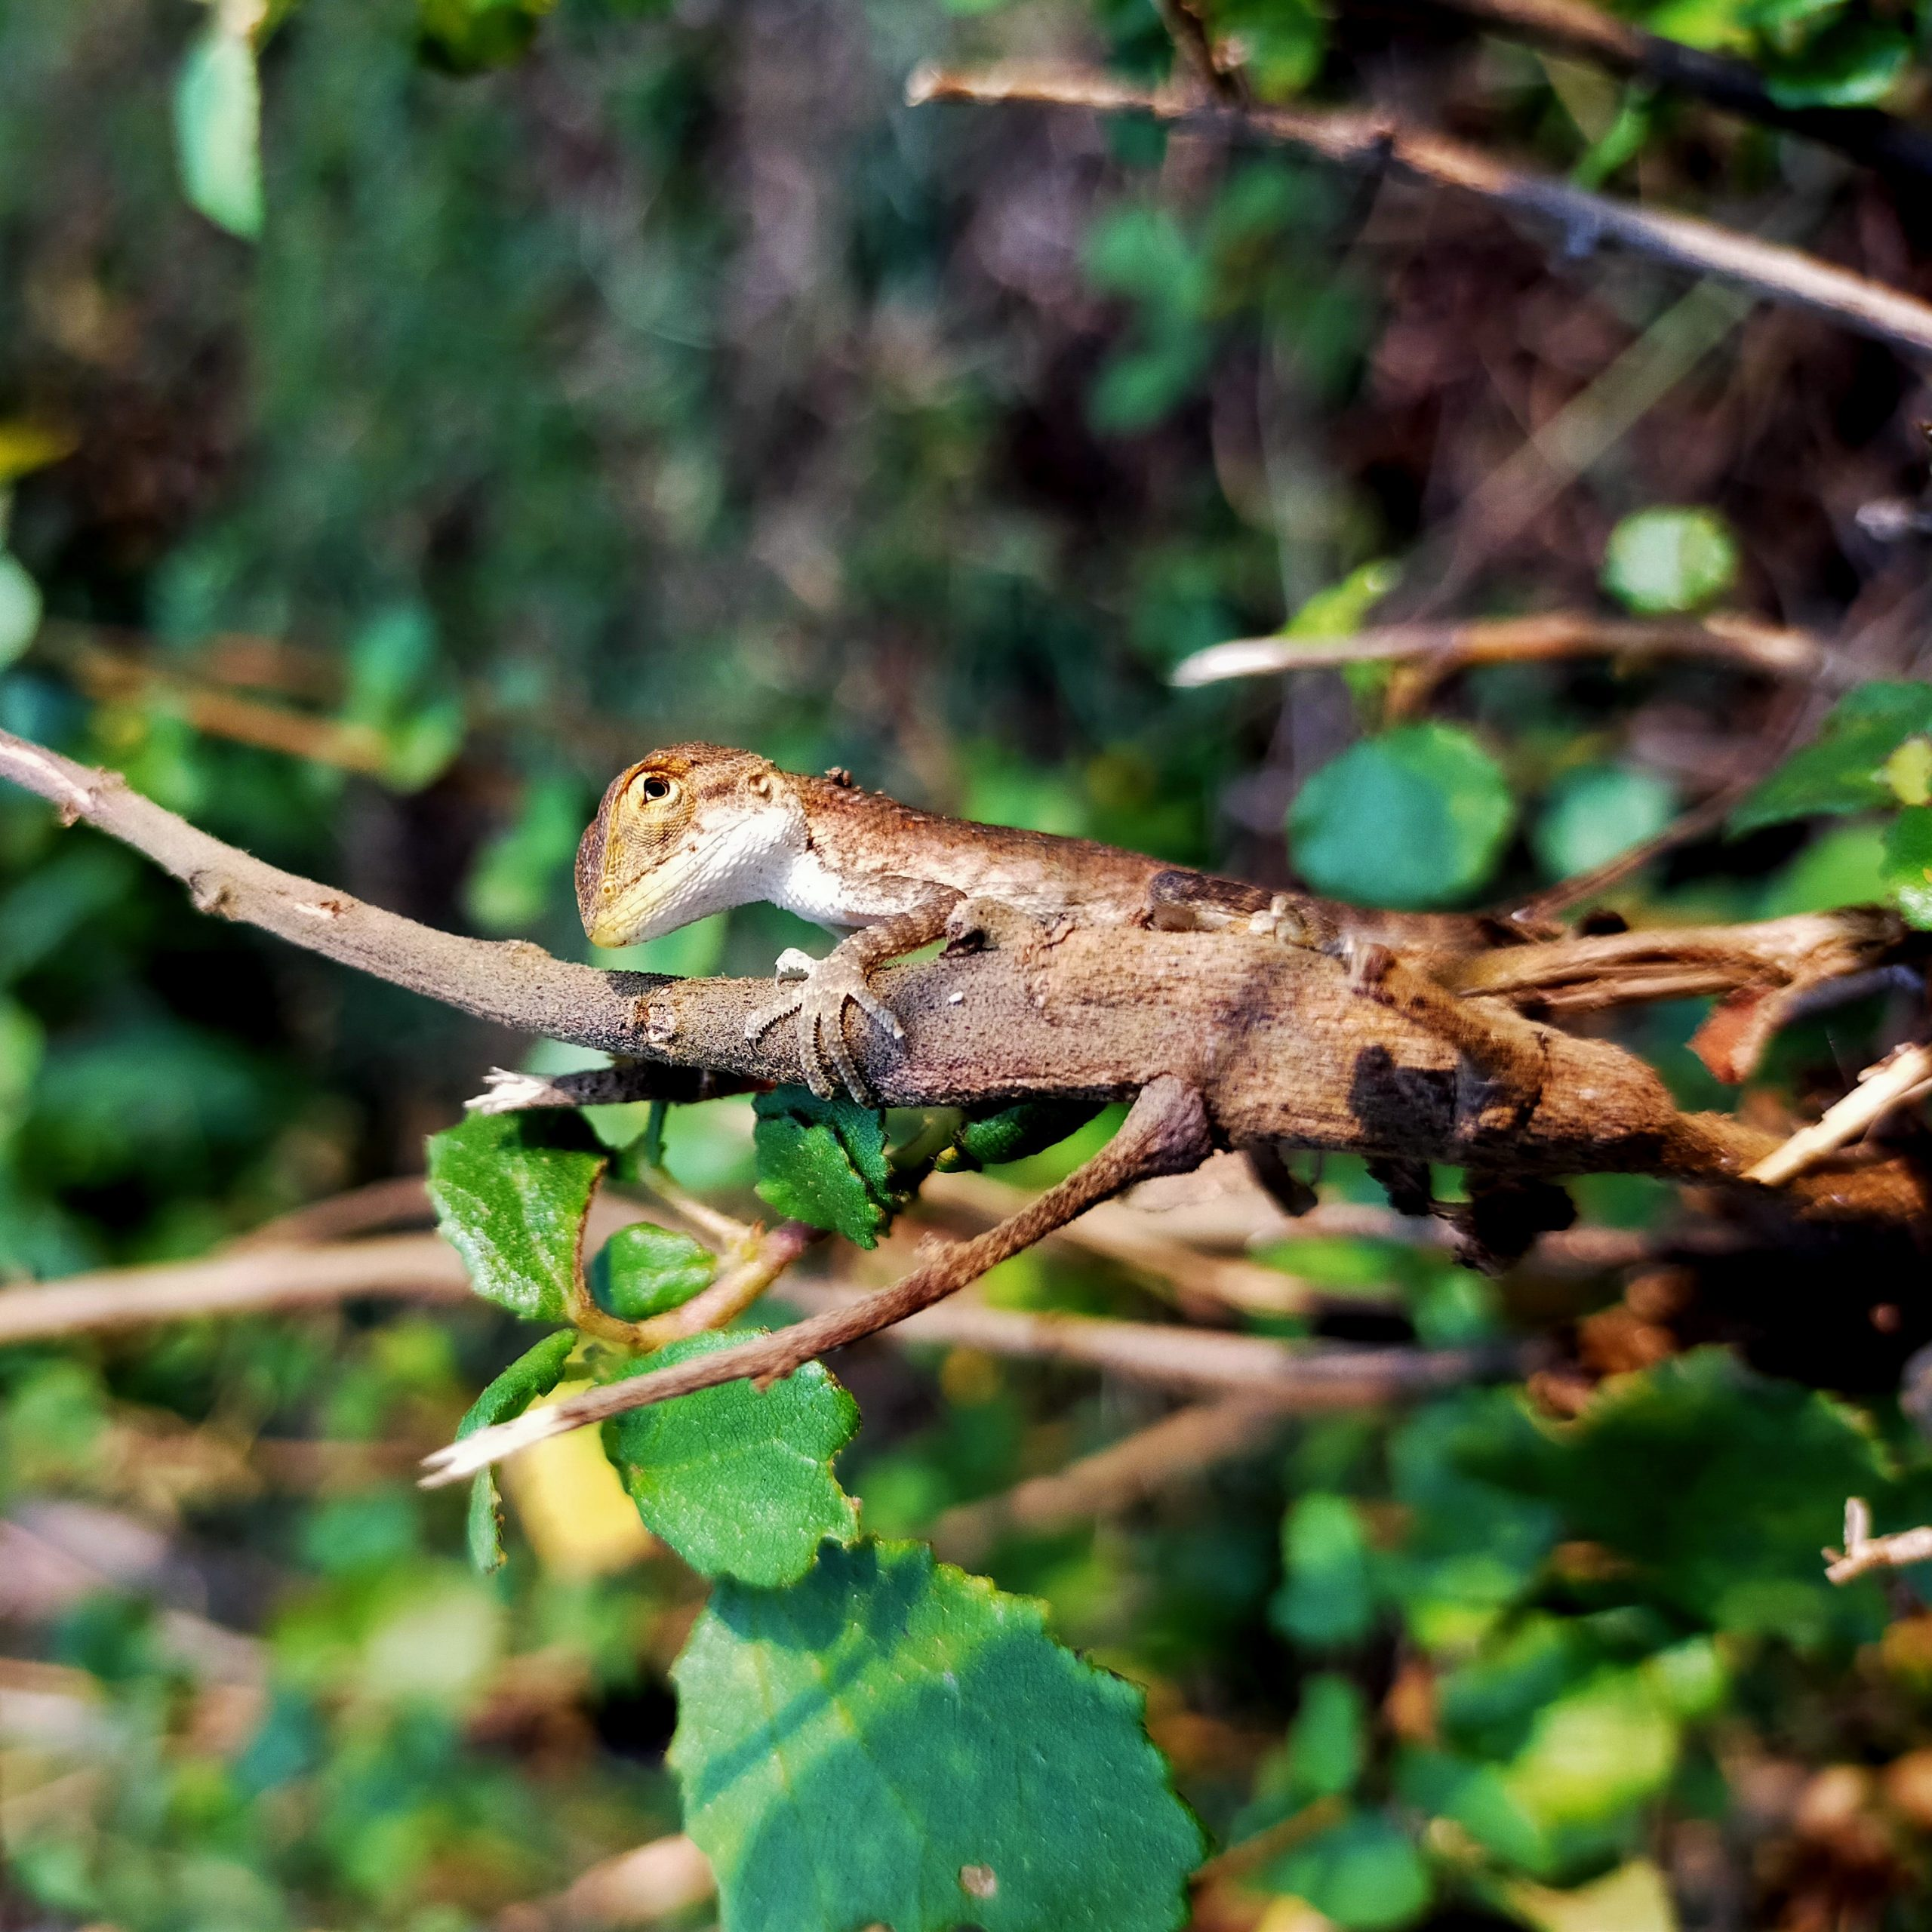 A garden lizard on a branch